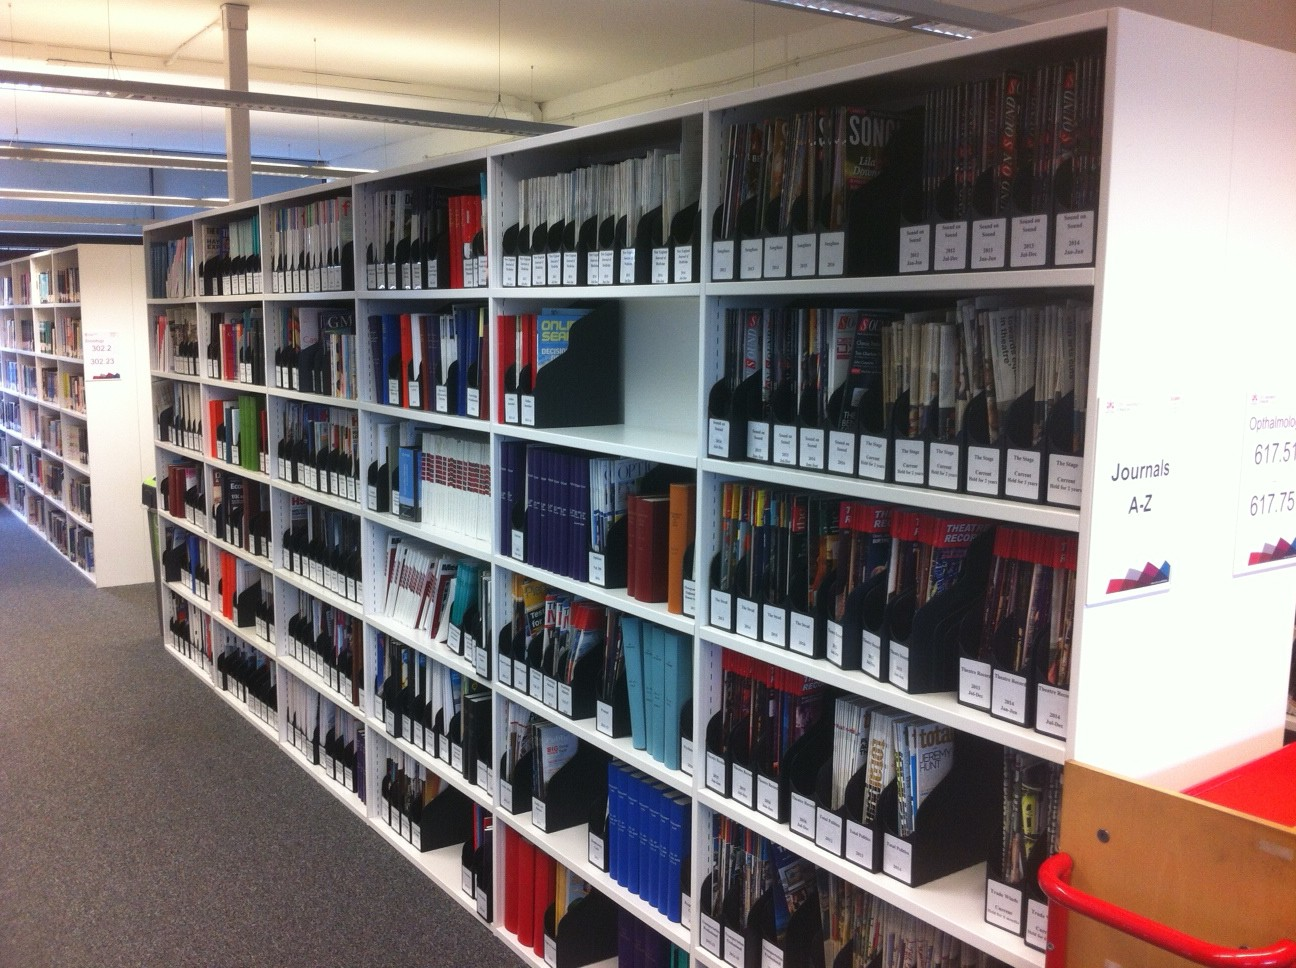 Our Print Journal Collection on Level 5